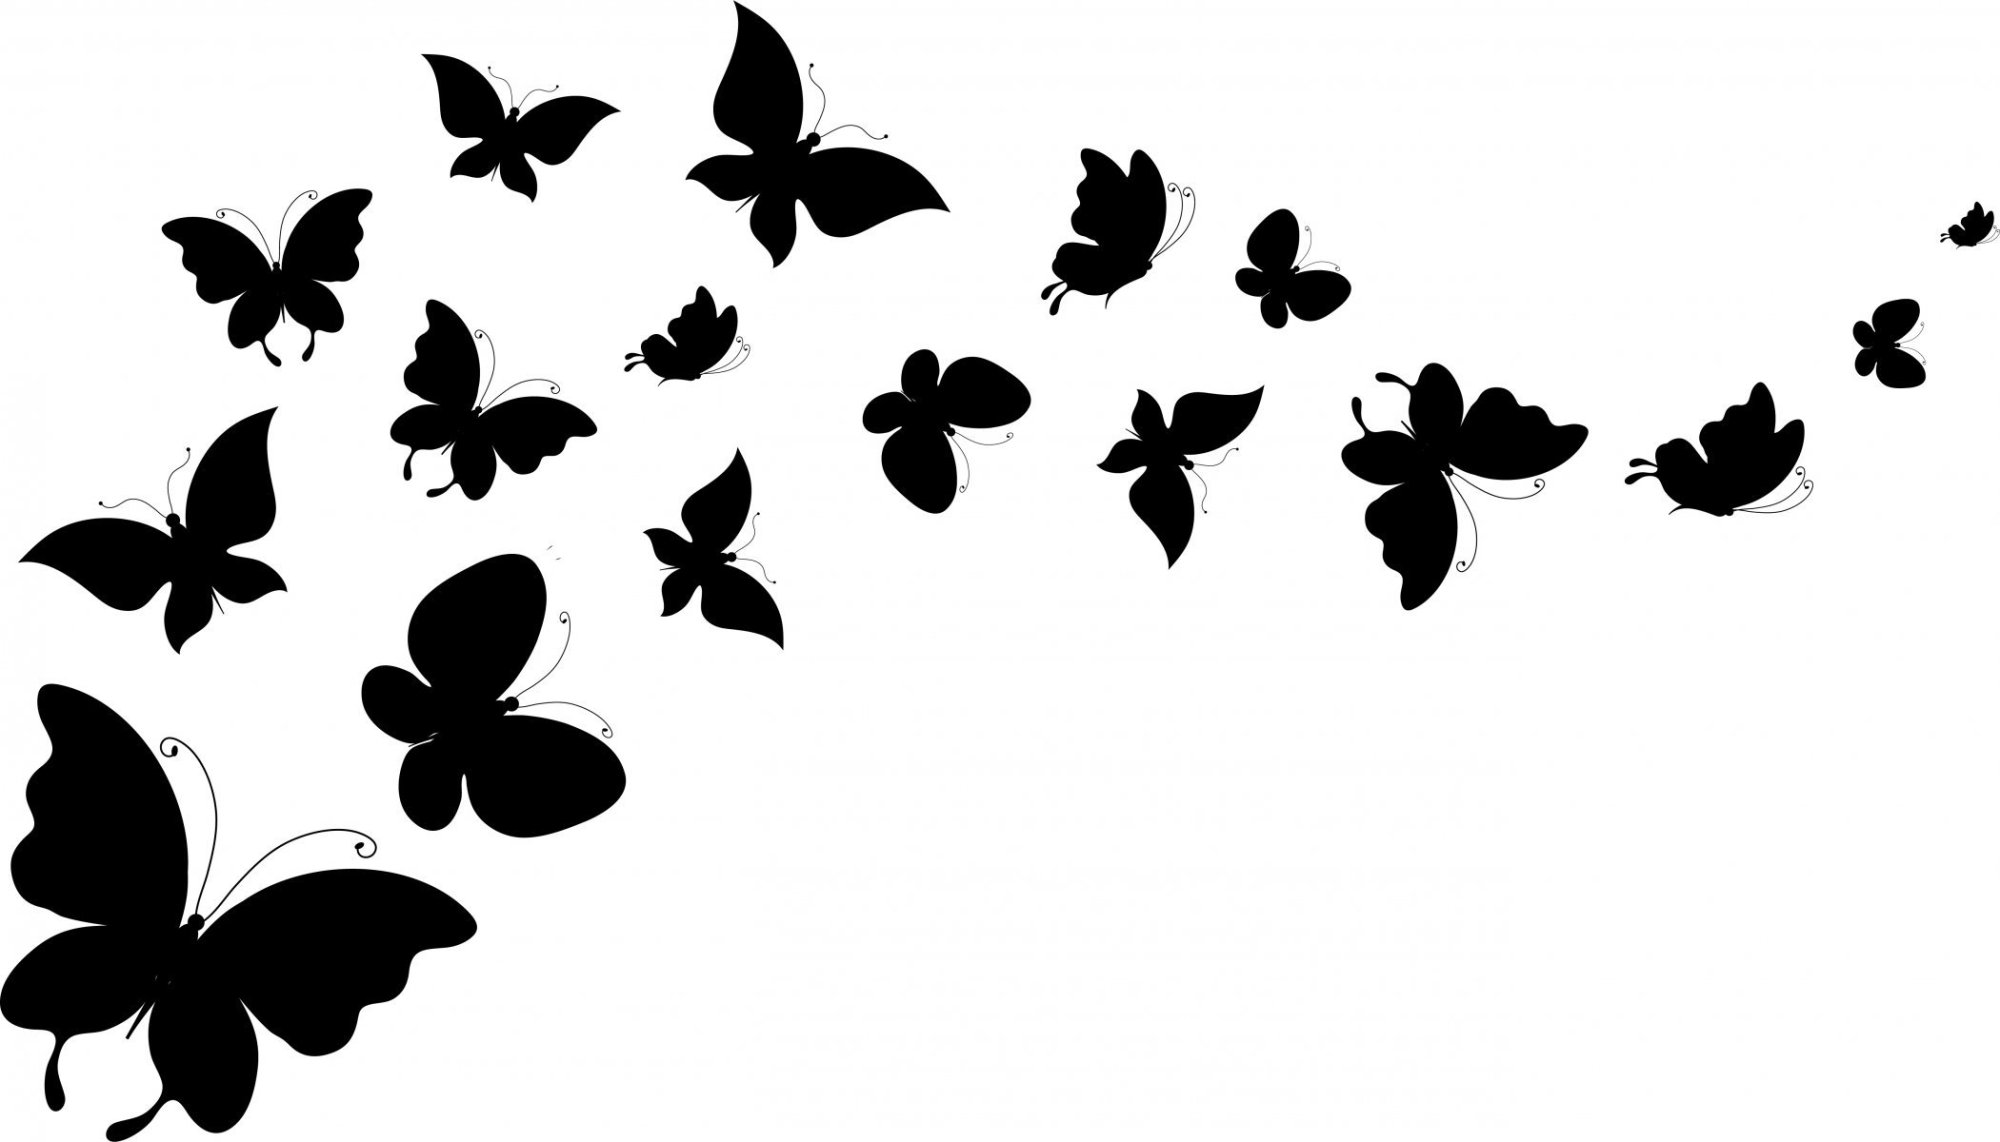 hight resolution of butterfly black and white image 44692